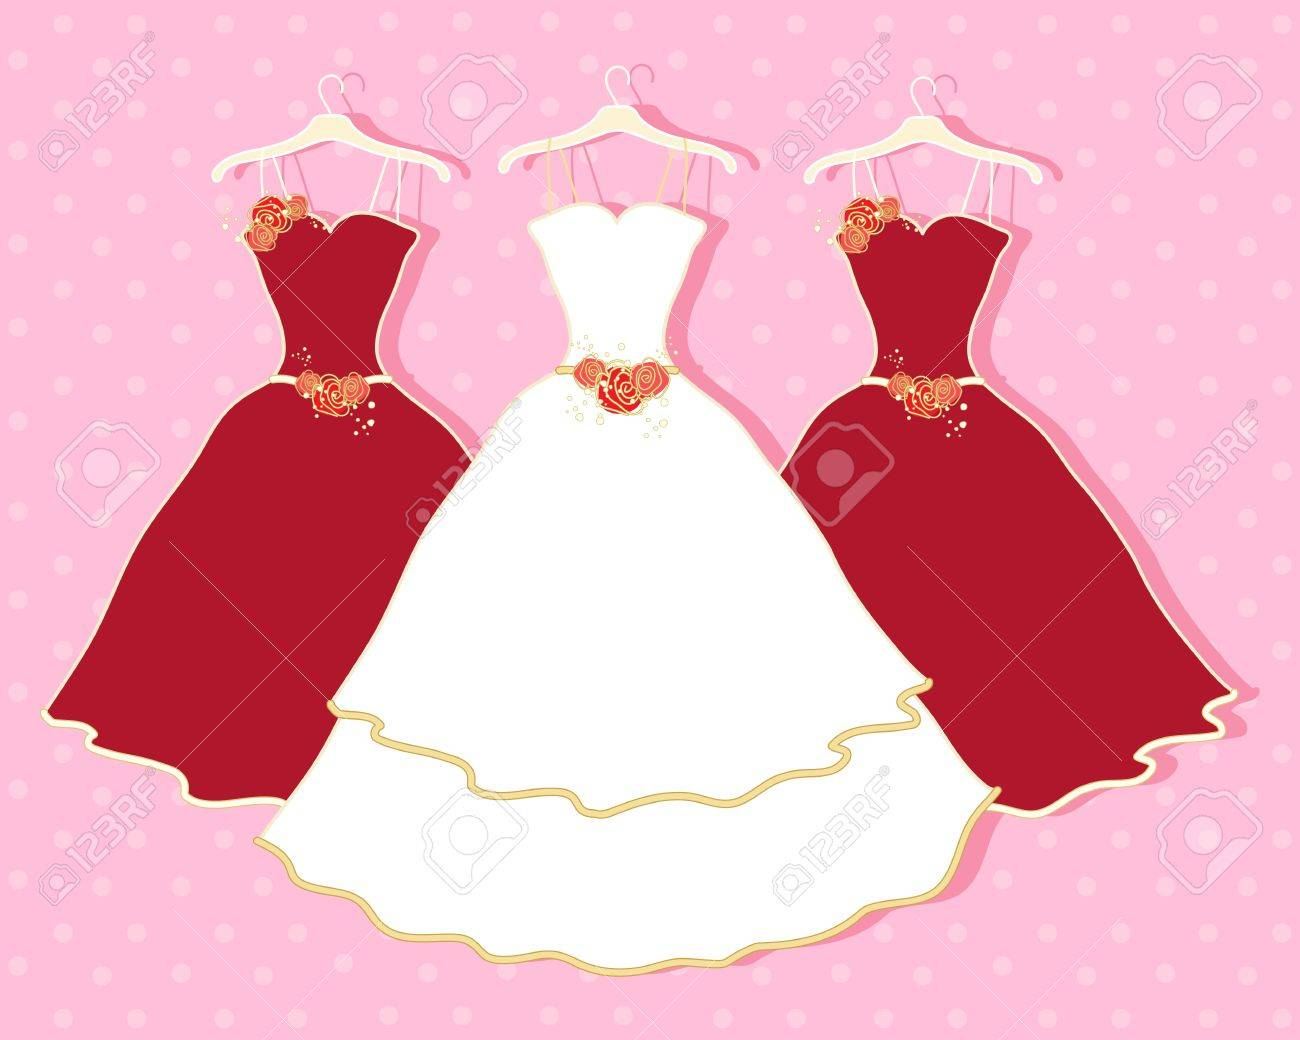 Red And White Wedding Dress.An Illustration Of A White Wedding Dress And Two Red Bridesmaid